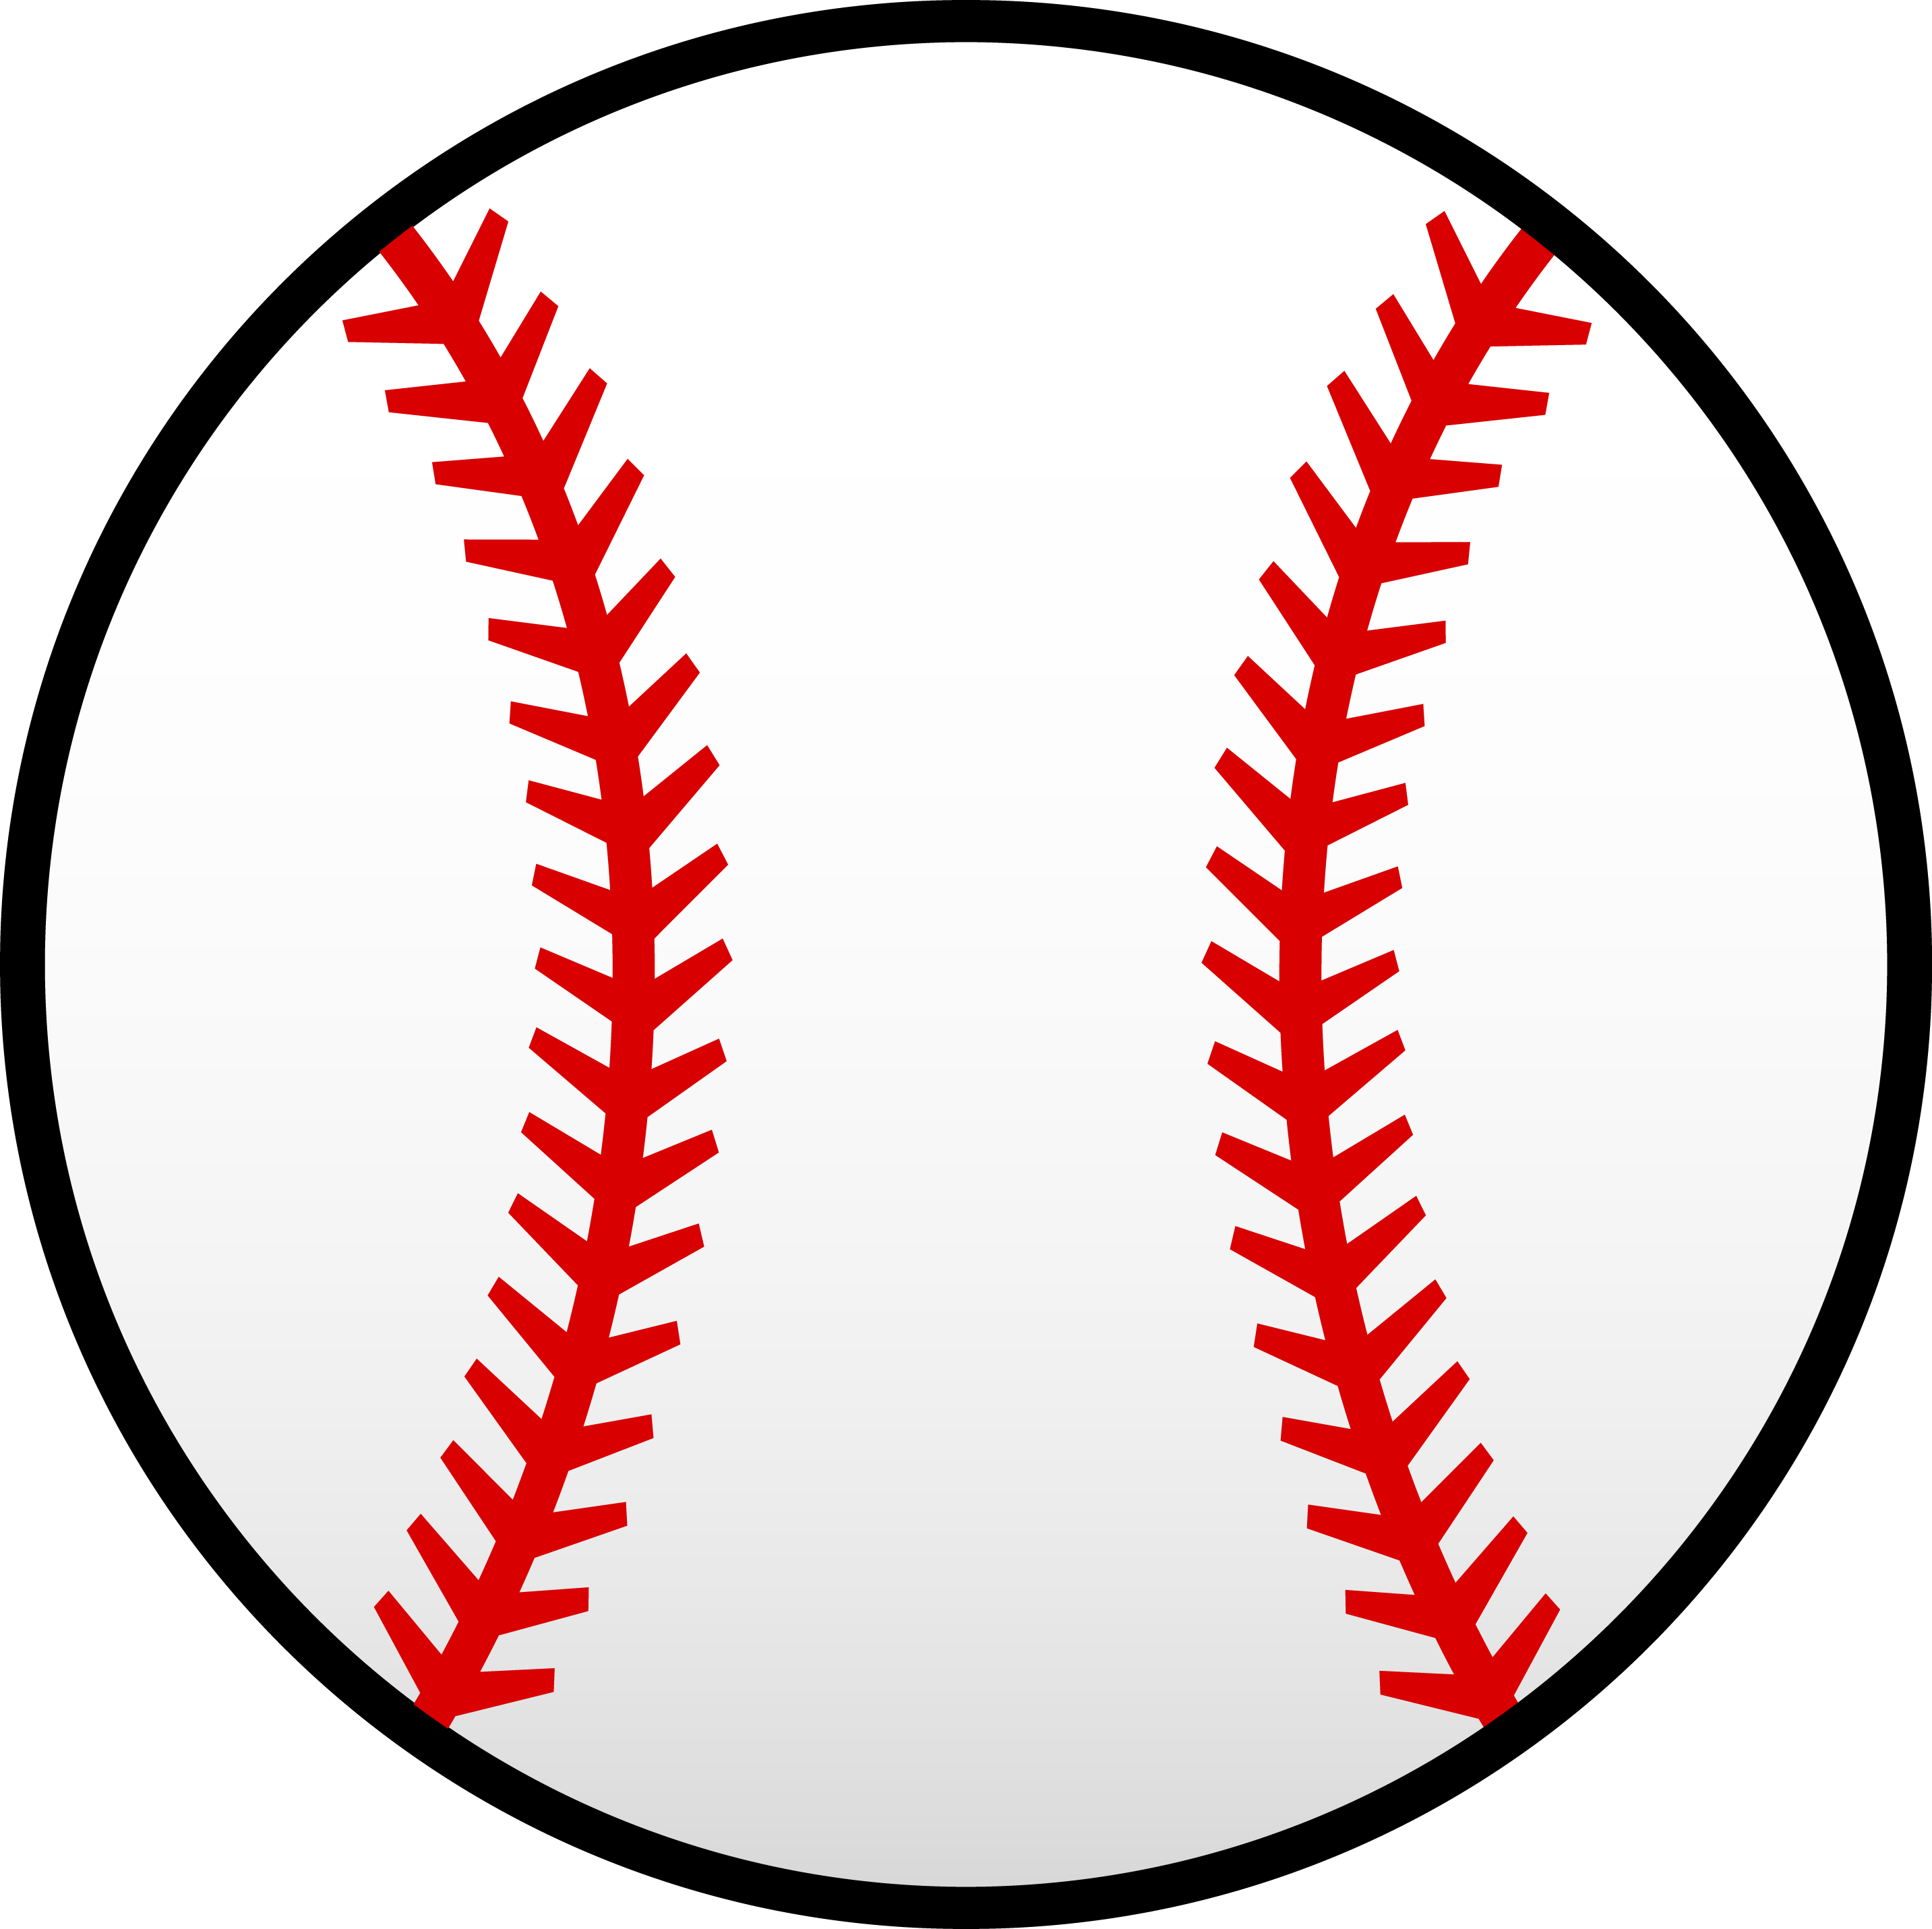 Softball clipart softball field. Images free download best